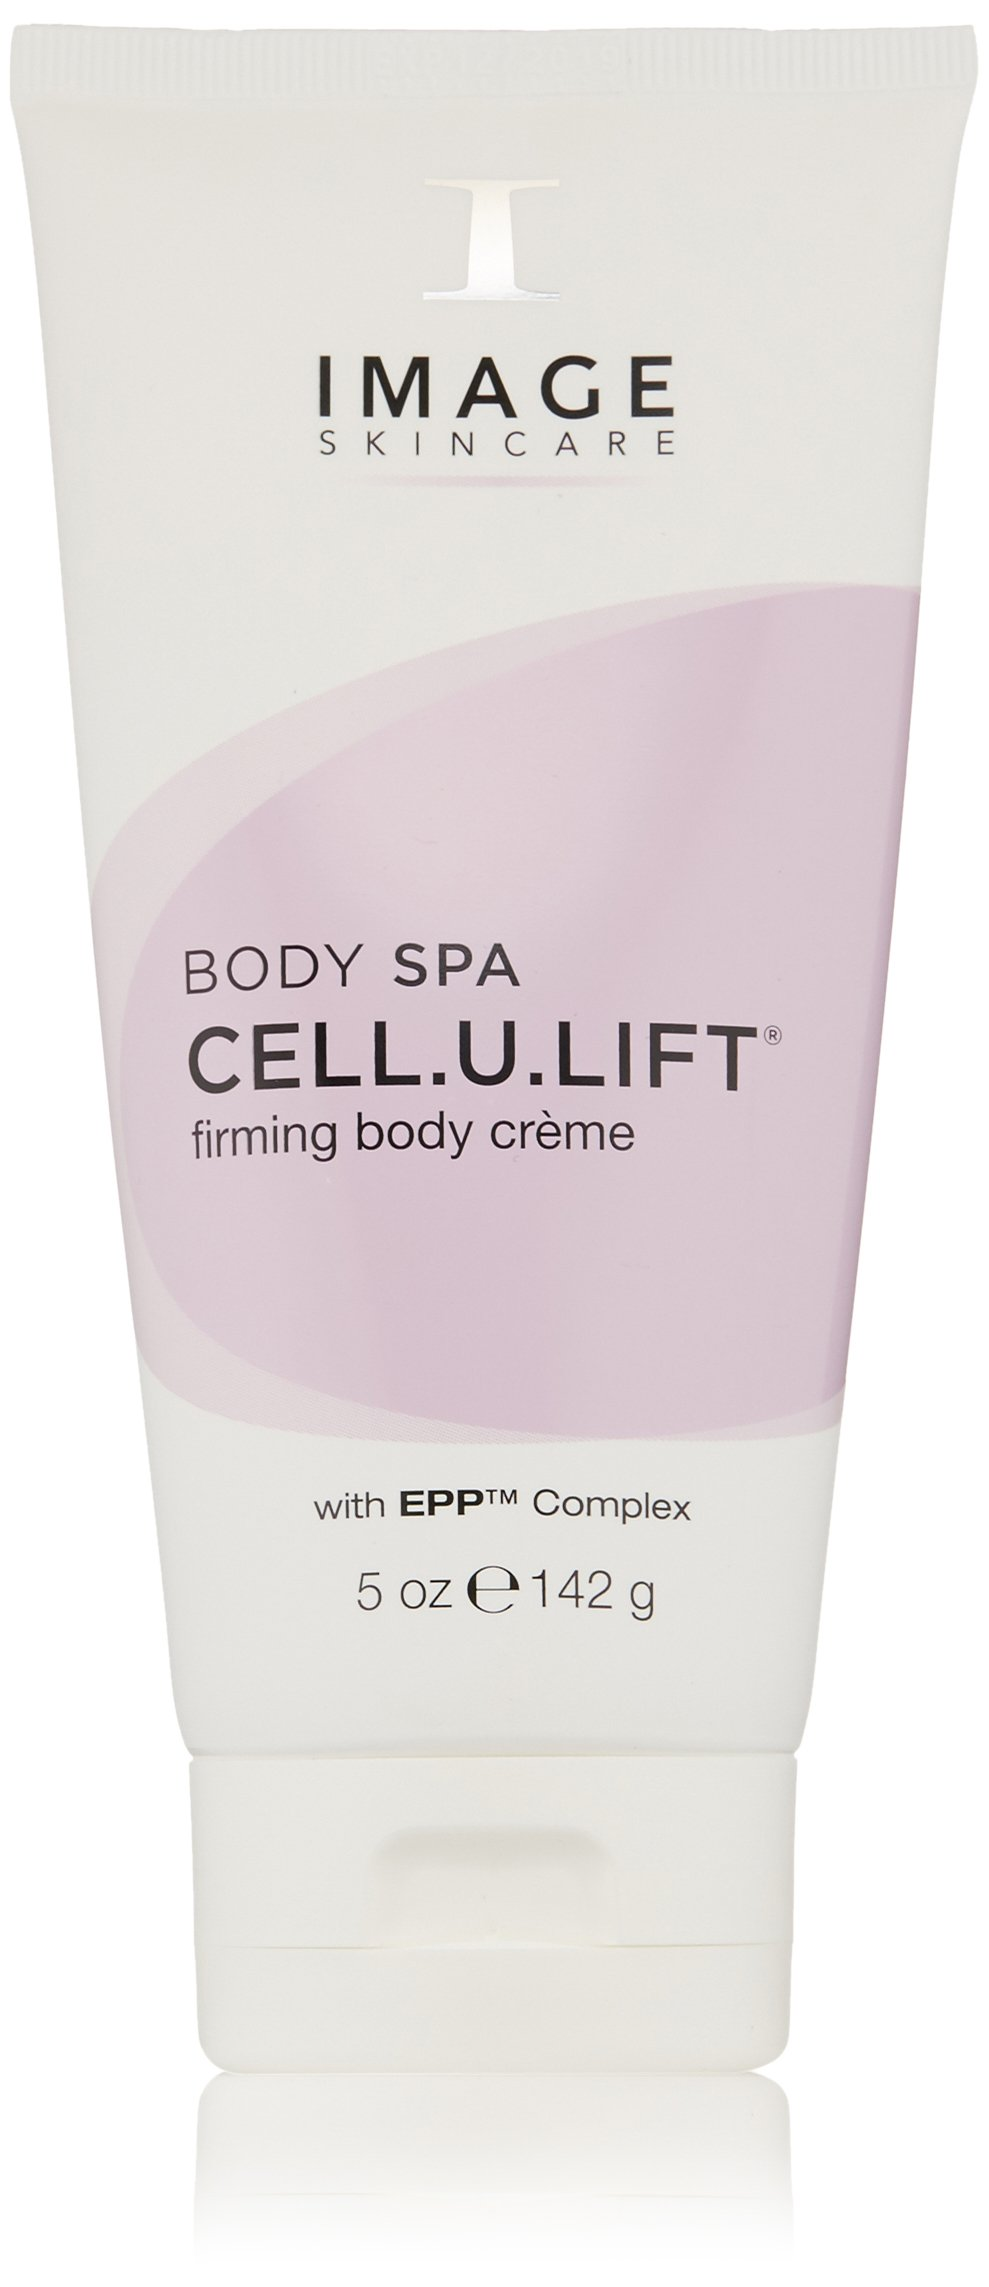 IMAGE Skincare Body Spa Cell U Lift Firming Body Crème, 5 oz.